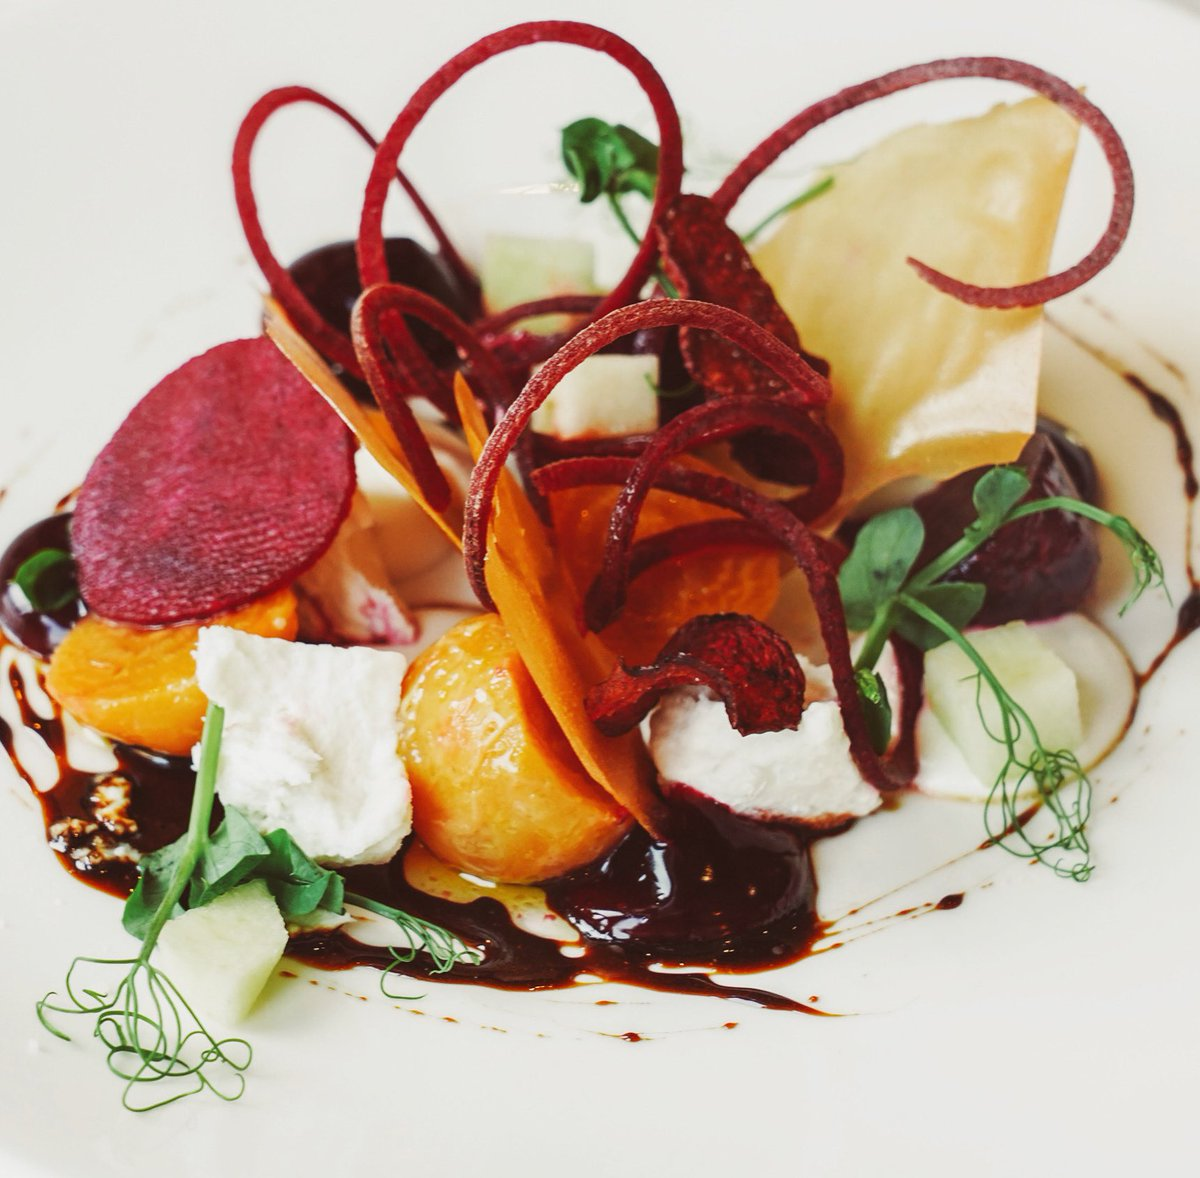 Slow Cooked Beetroot Salad With creamy goats cheese, crispy filo pastry, cane syrup and apple   https://branchesrestaurant.co.uk  #nefollowers #nefoodies #newcastlerestaurants #healthylifestyle #branchesjesmond #salad #healthychoices #beetroot #goatscheese #northeastfoodiespic.twitter.com/roPtjVhDUy